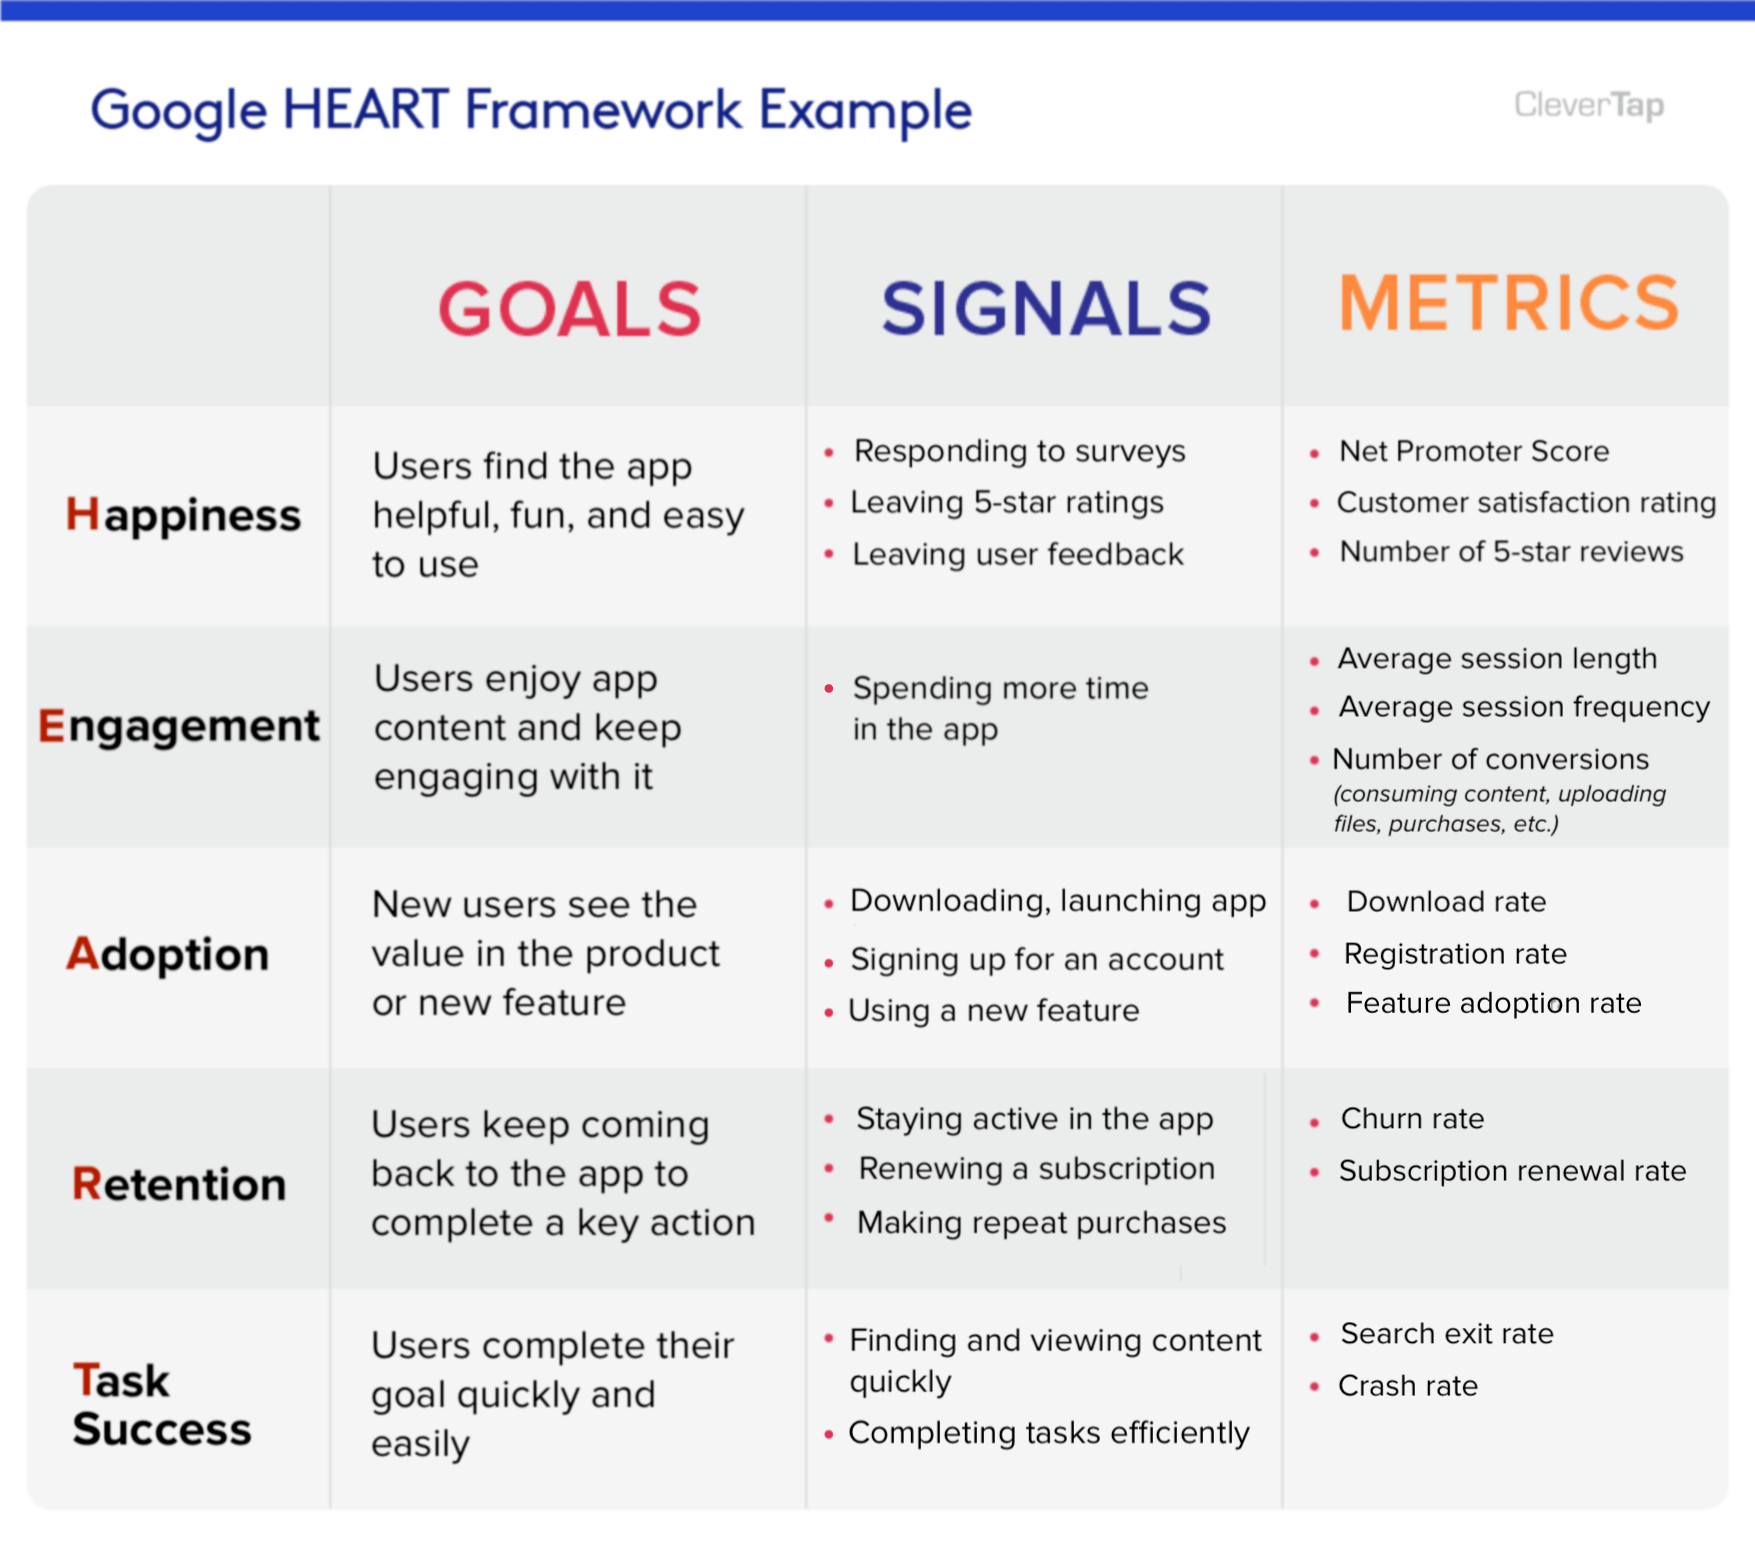 How Measures And Improves Ux With The Heart Framework